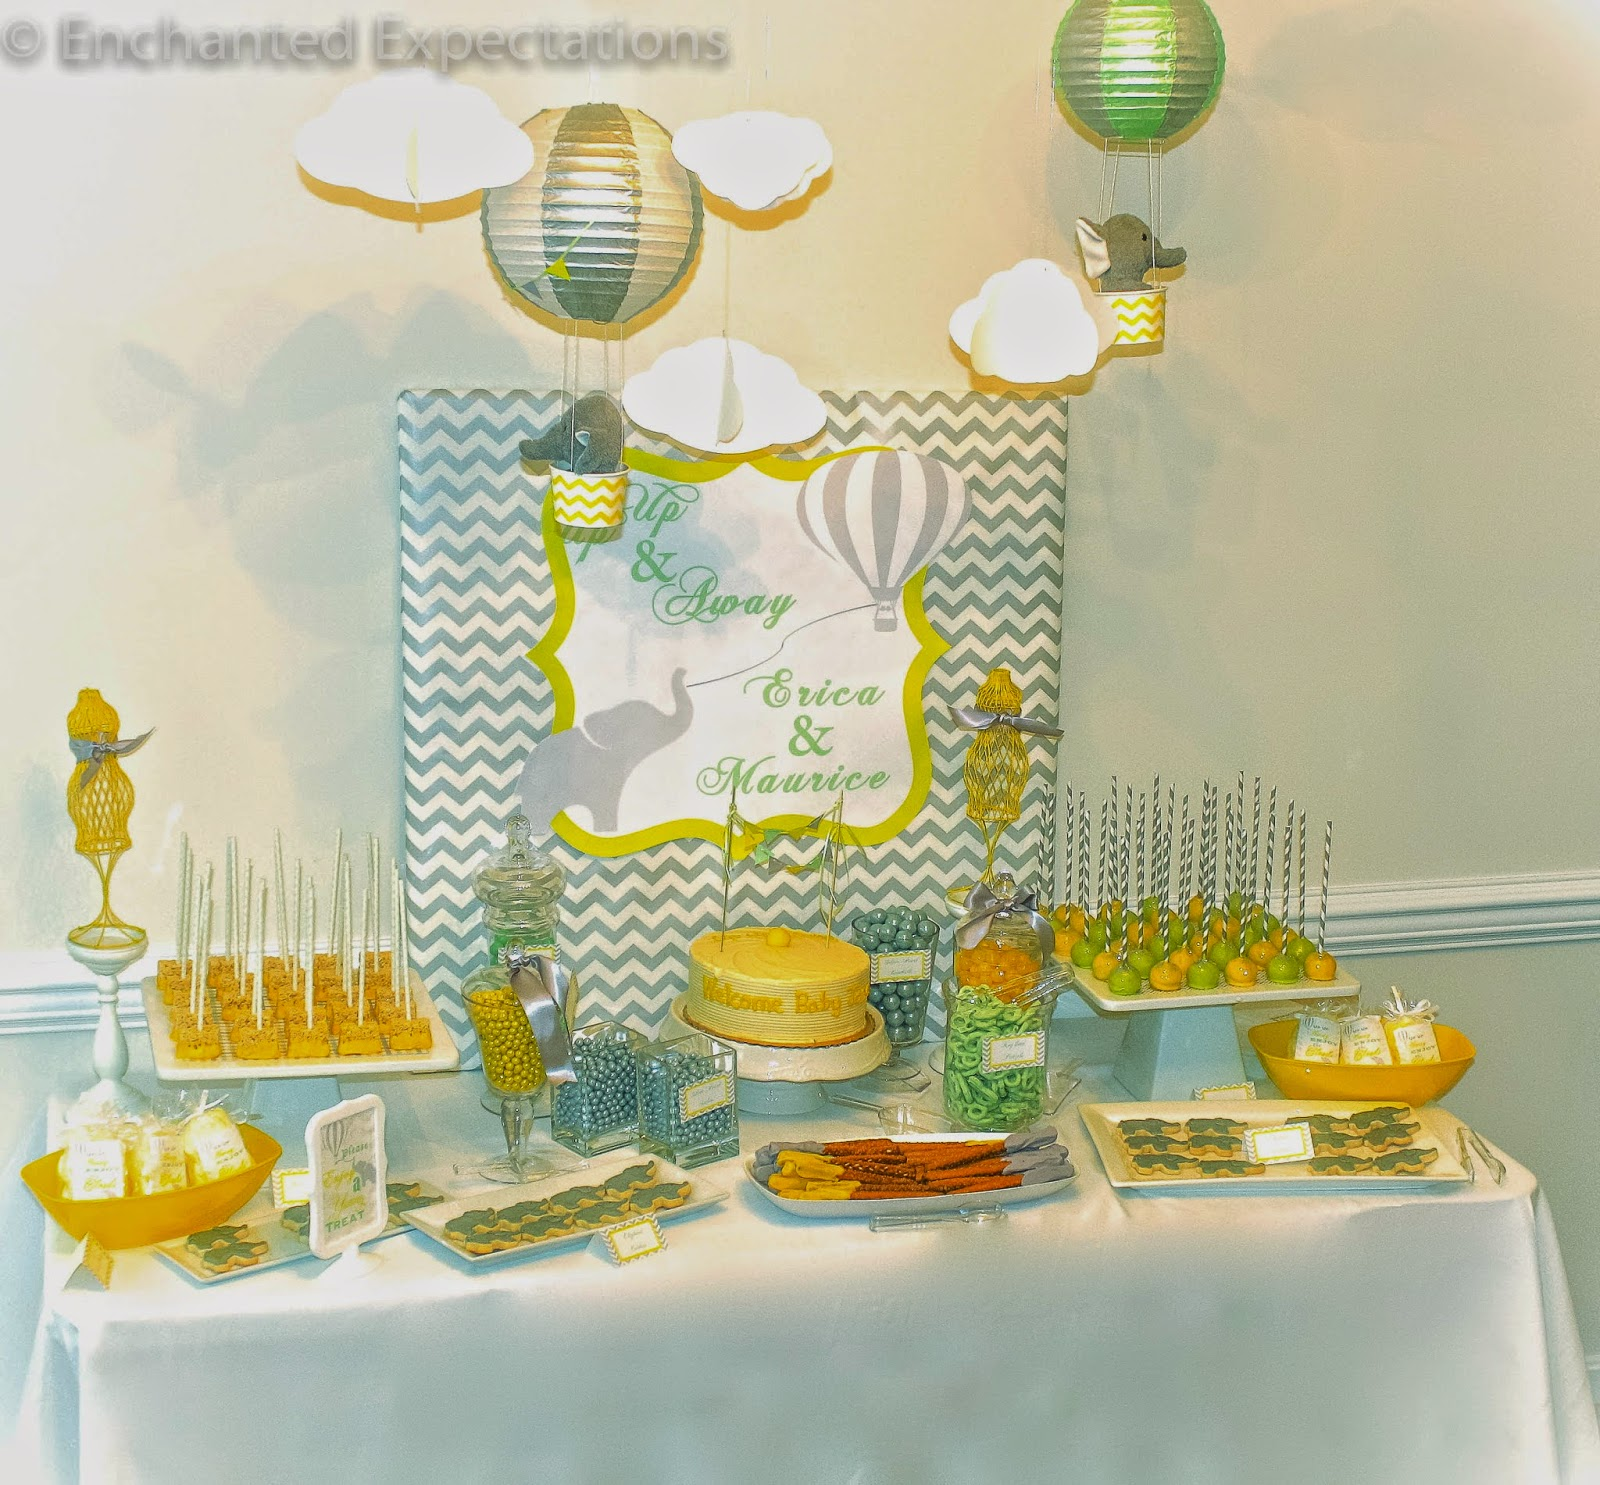 expectations up up away mint green yellow and grey baby shower